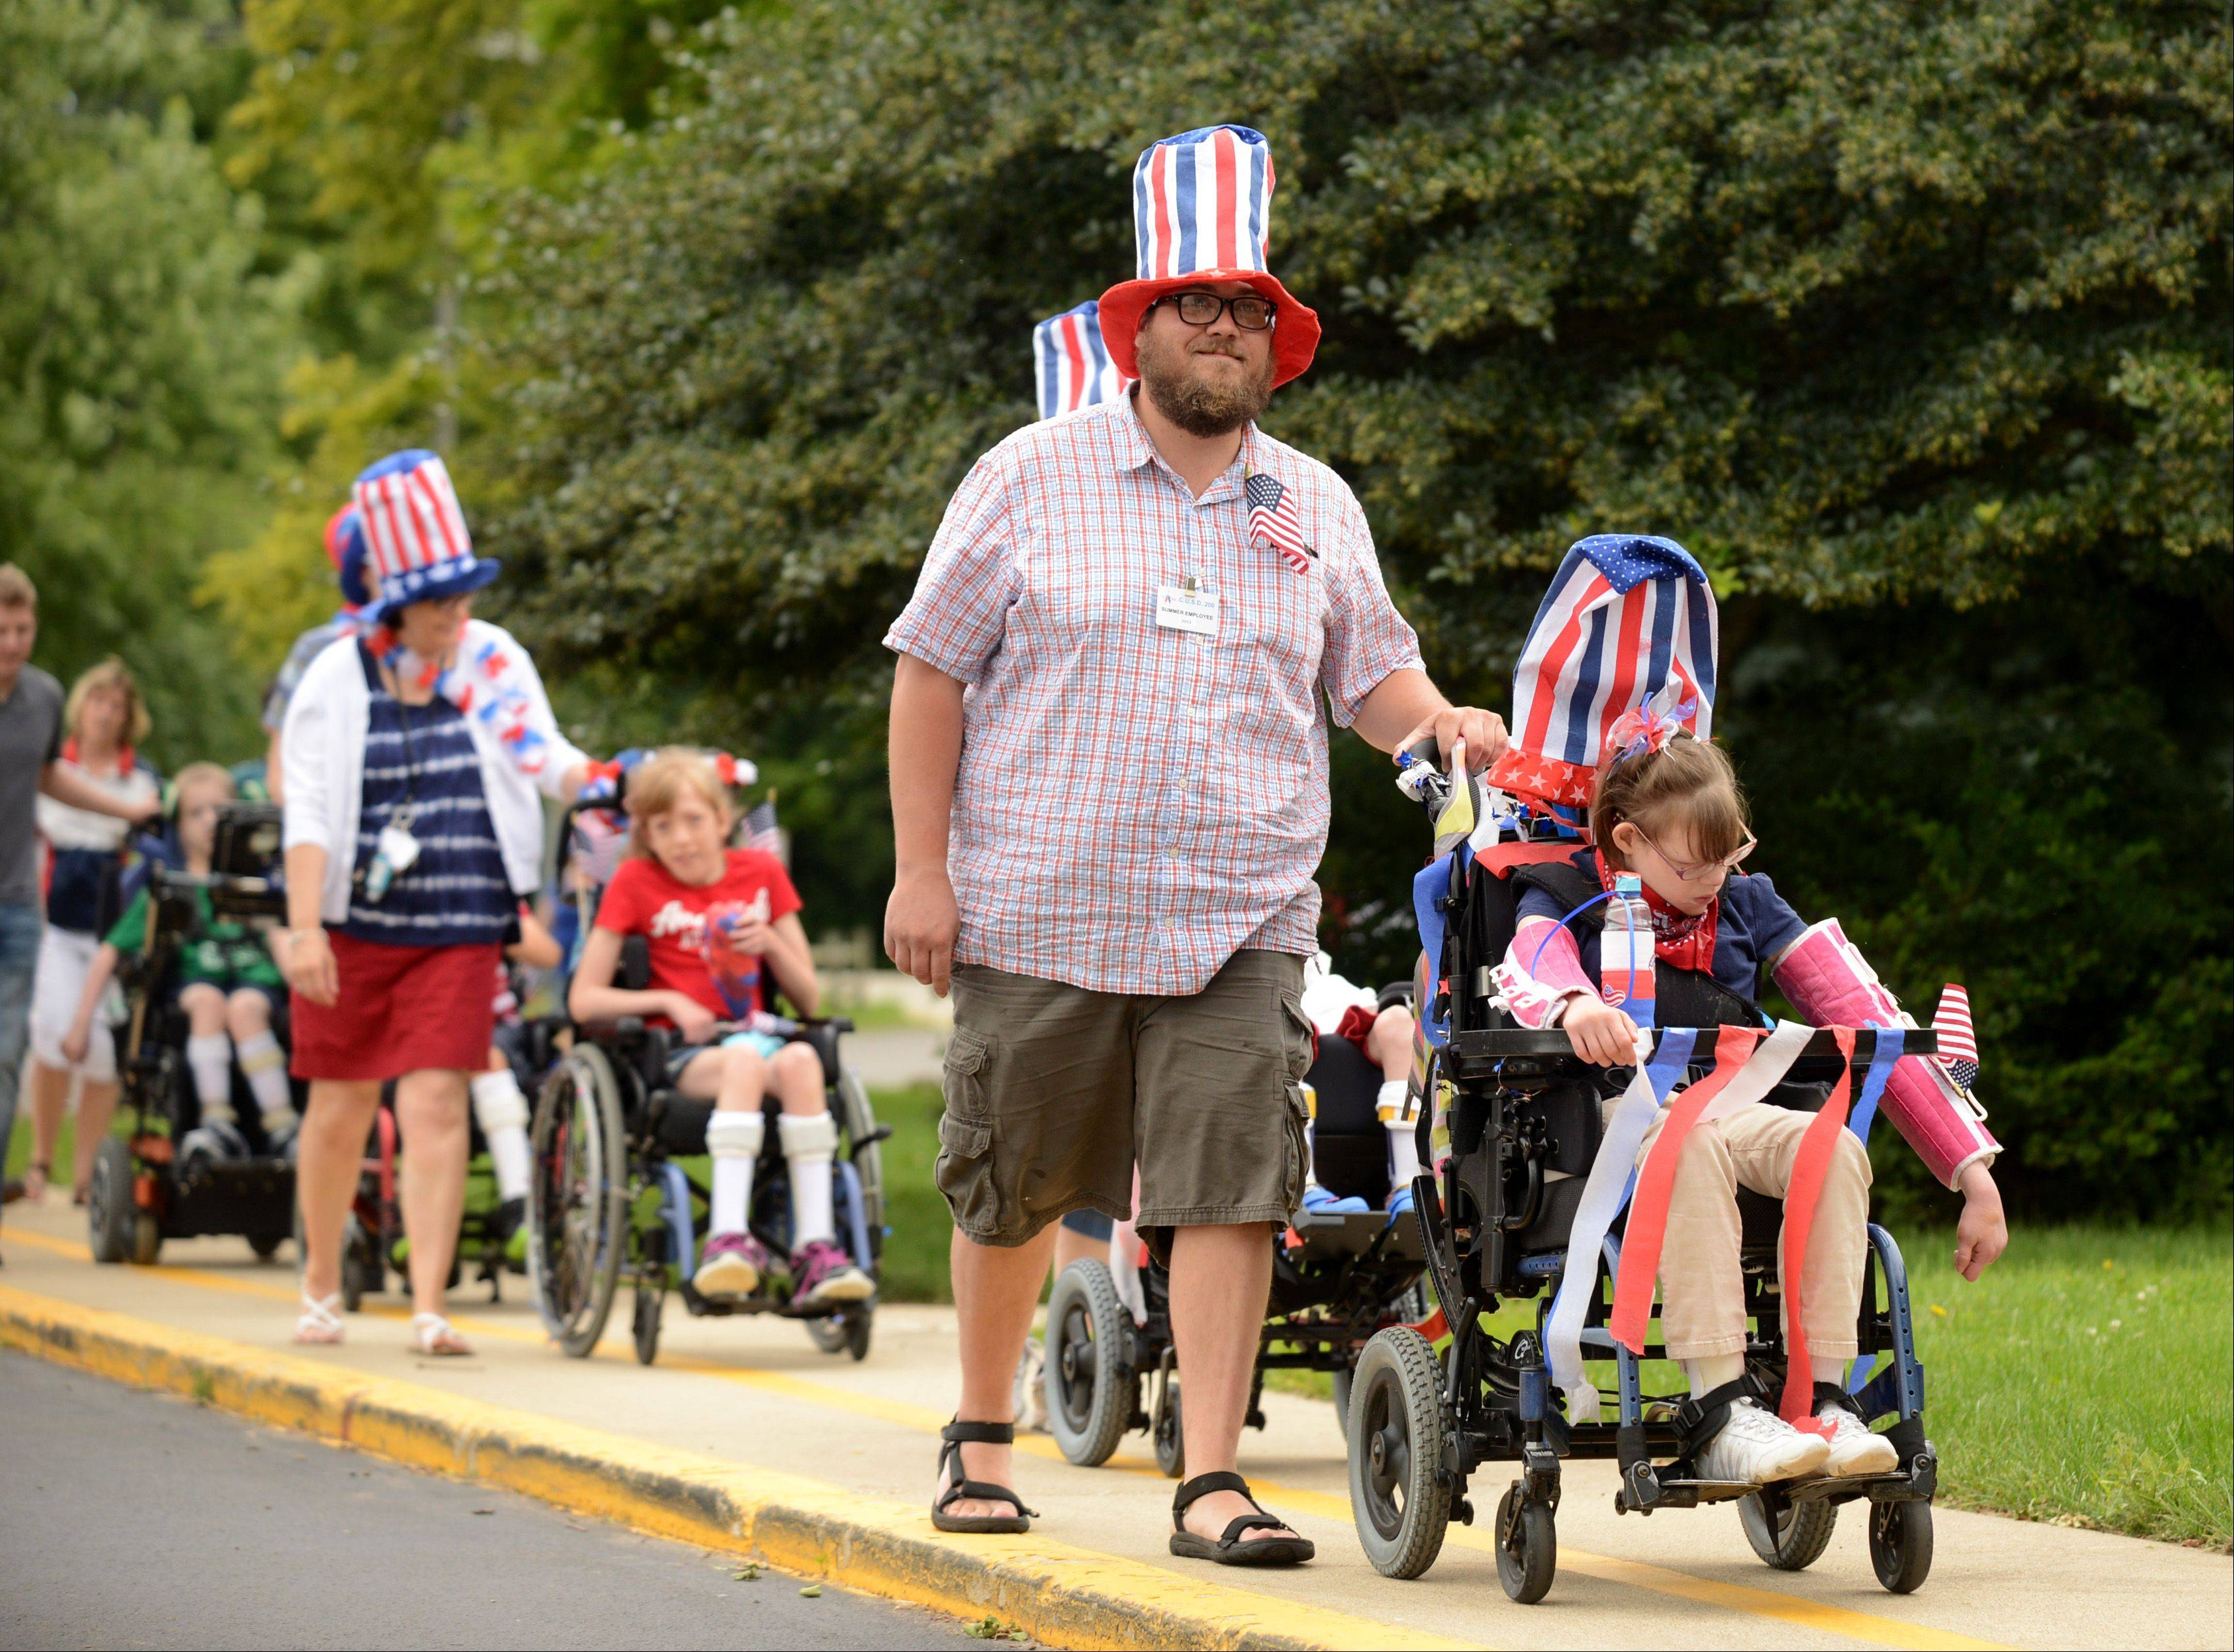 Scott Lutz and Anna Herpolsheimer were some of the more highly decorated participants in Tuesday's Independence Day Parade at Warrenville's Elementary School.